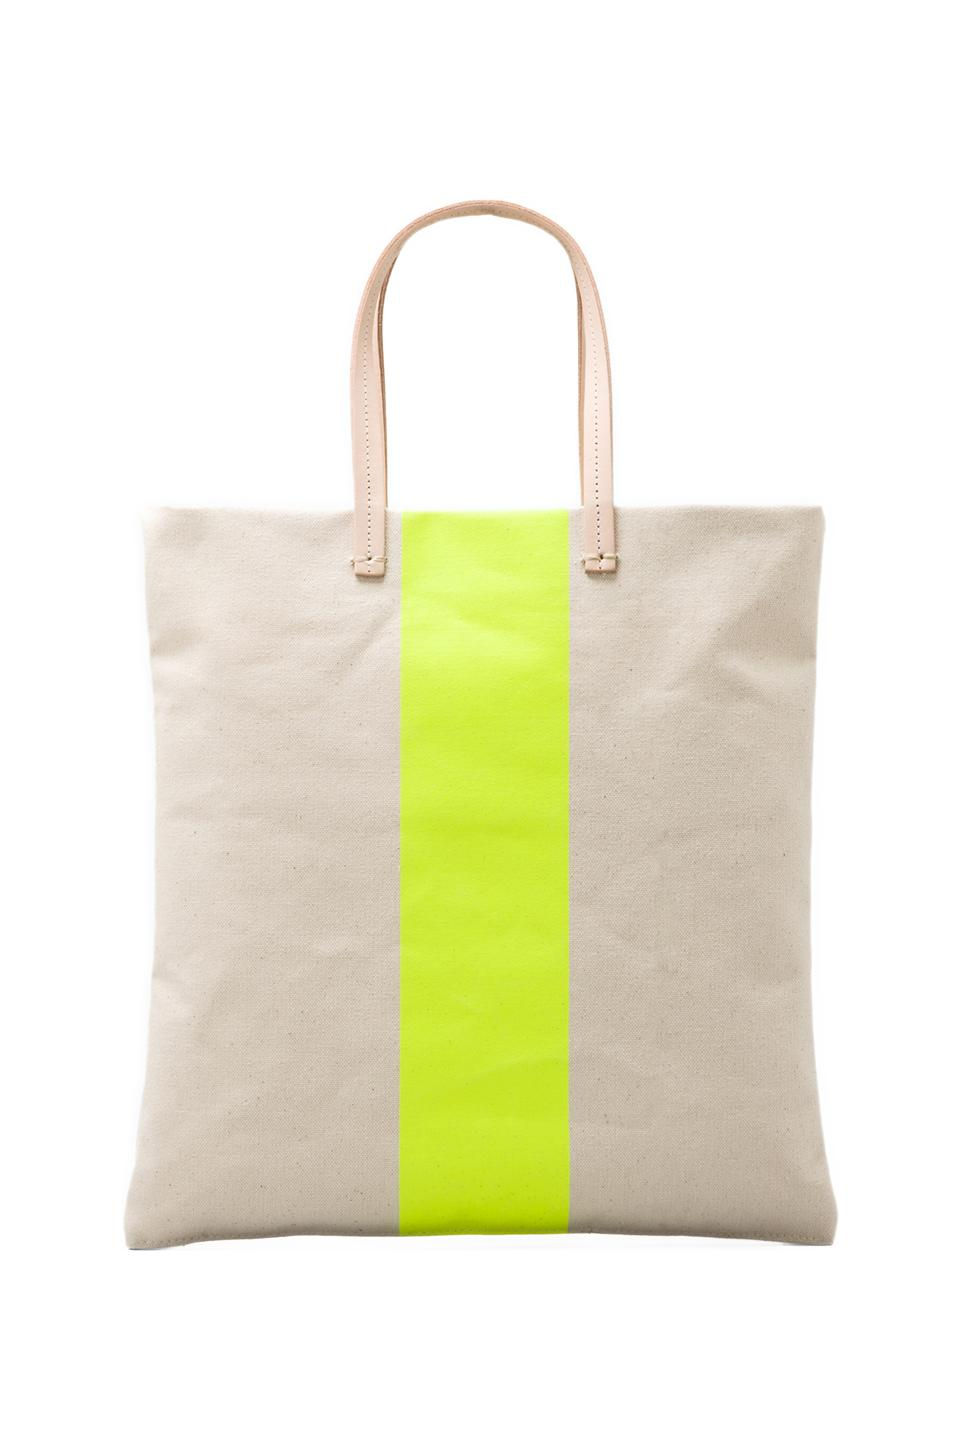 Clare V. Canvas Carry All Tote in Neon Yellow Stripe